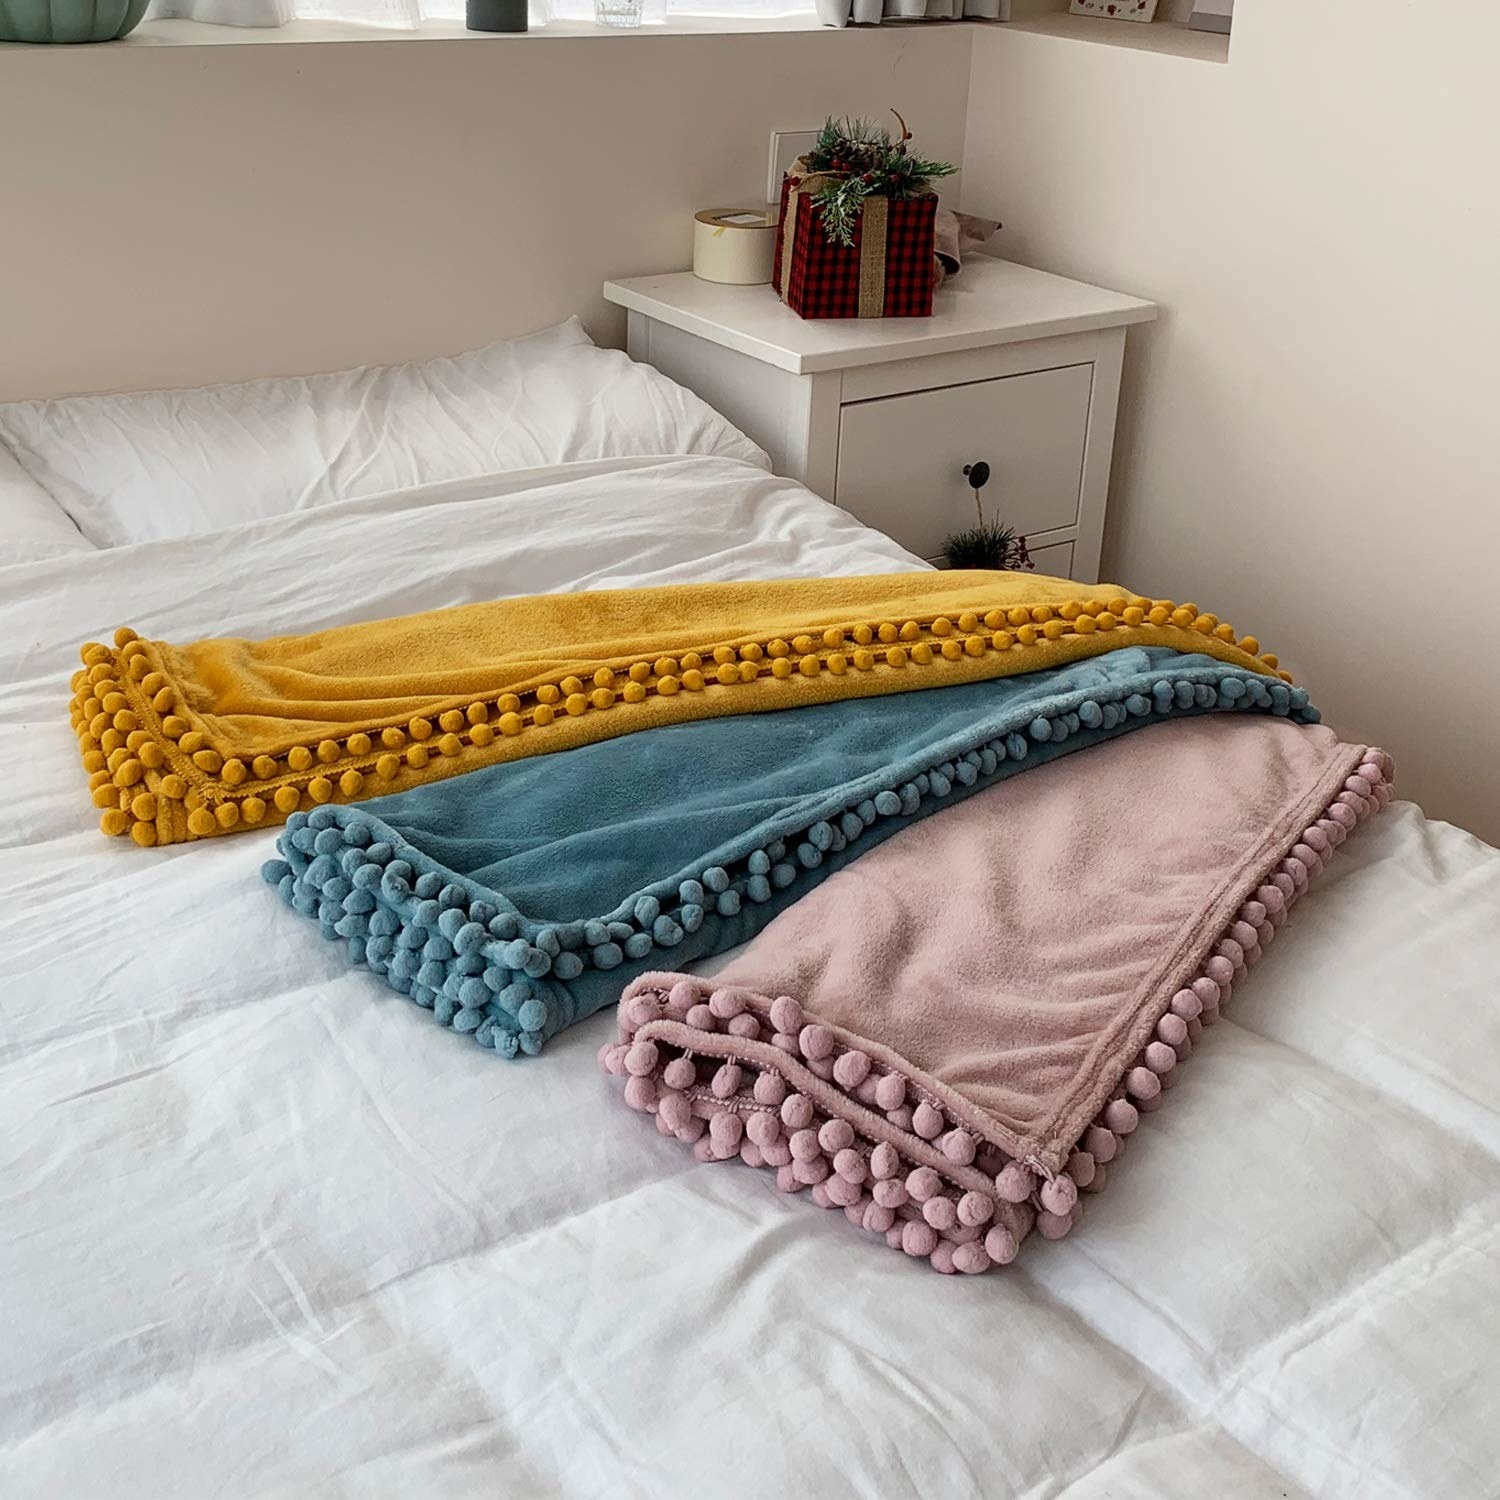 Three fuzzy blankets with pom poms down the sides across a white bedspread